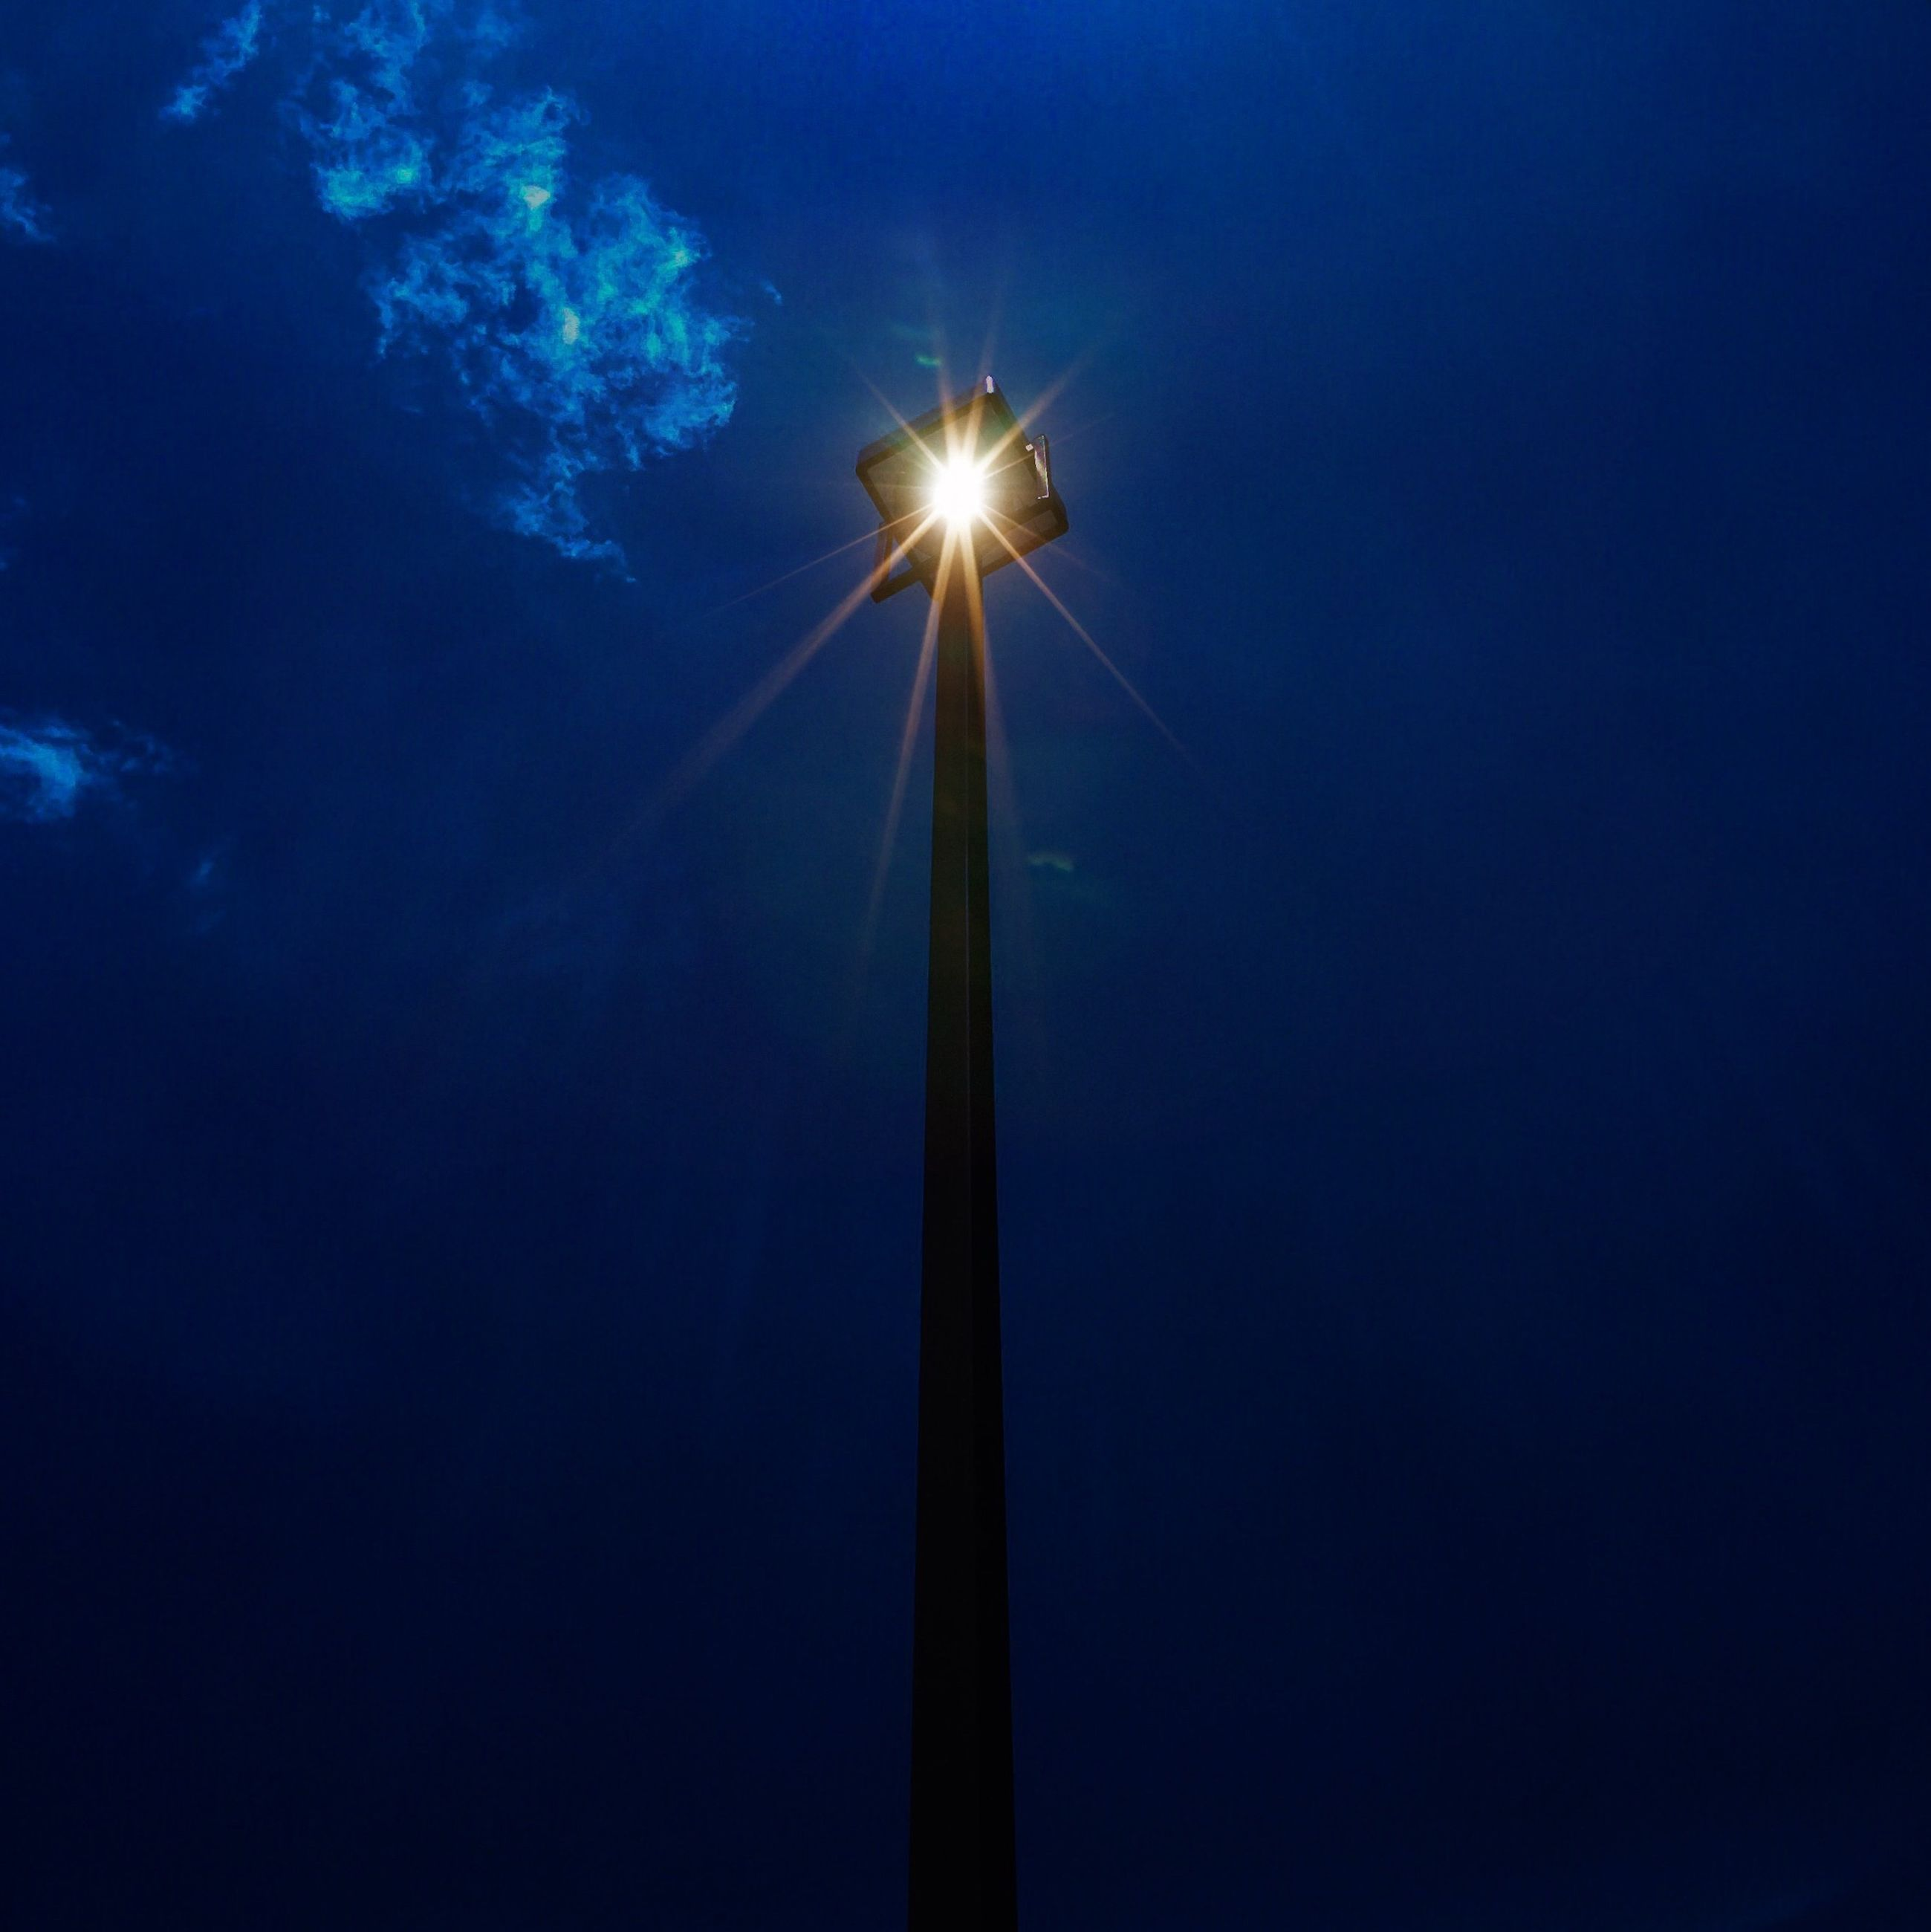 low angle view, blue, night, clear sky, silhouette, sun, sky, copy space, street light, lens flare, glowing, lighting equipment, sunlight, nature, electricity, sunbeam, moon, tranquility, outdoors, illuminated